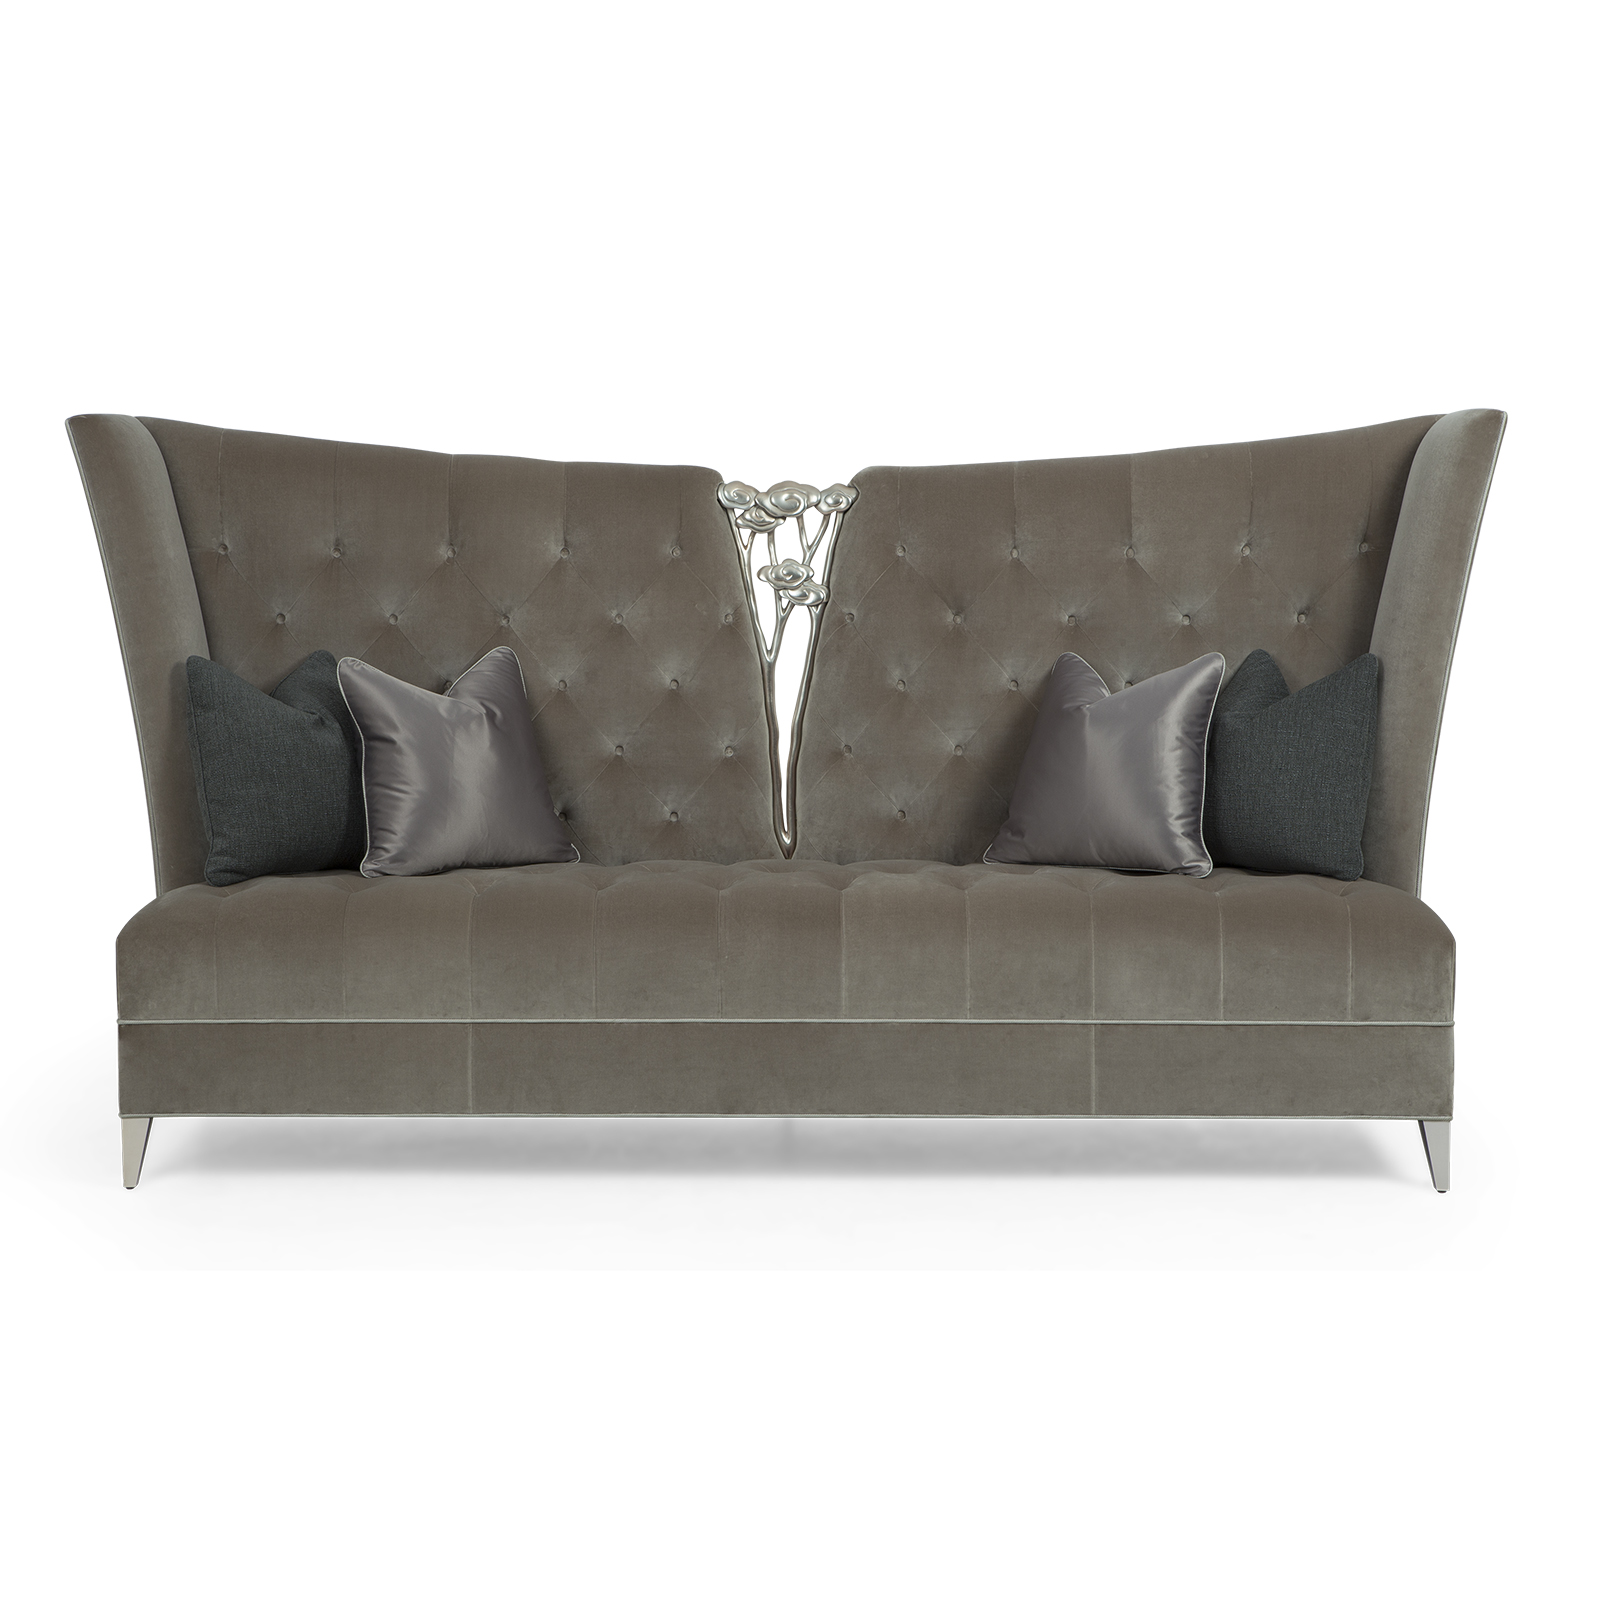 Christopher-Guy-sofa